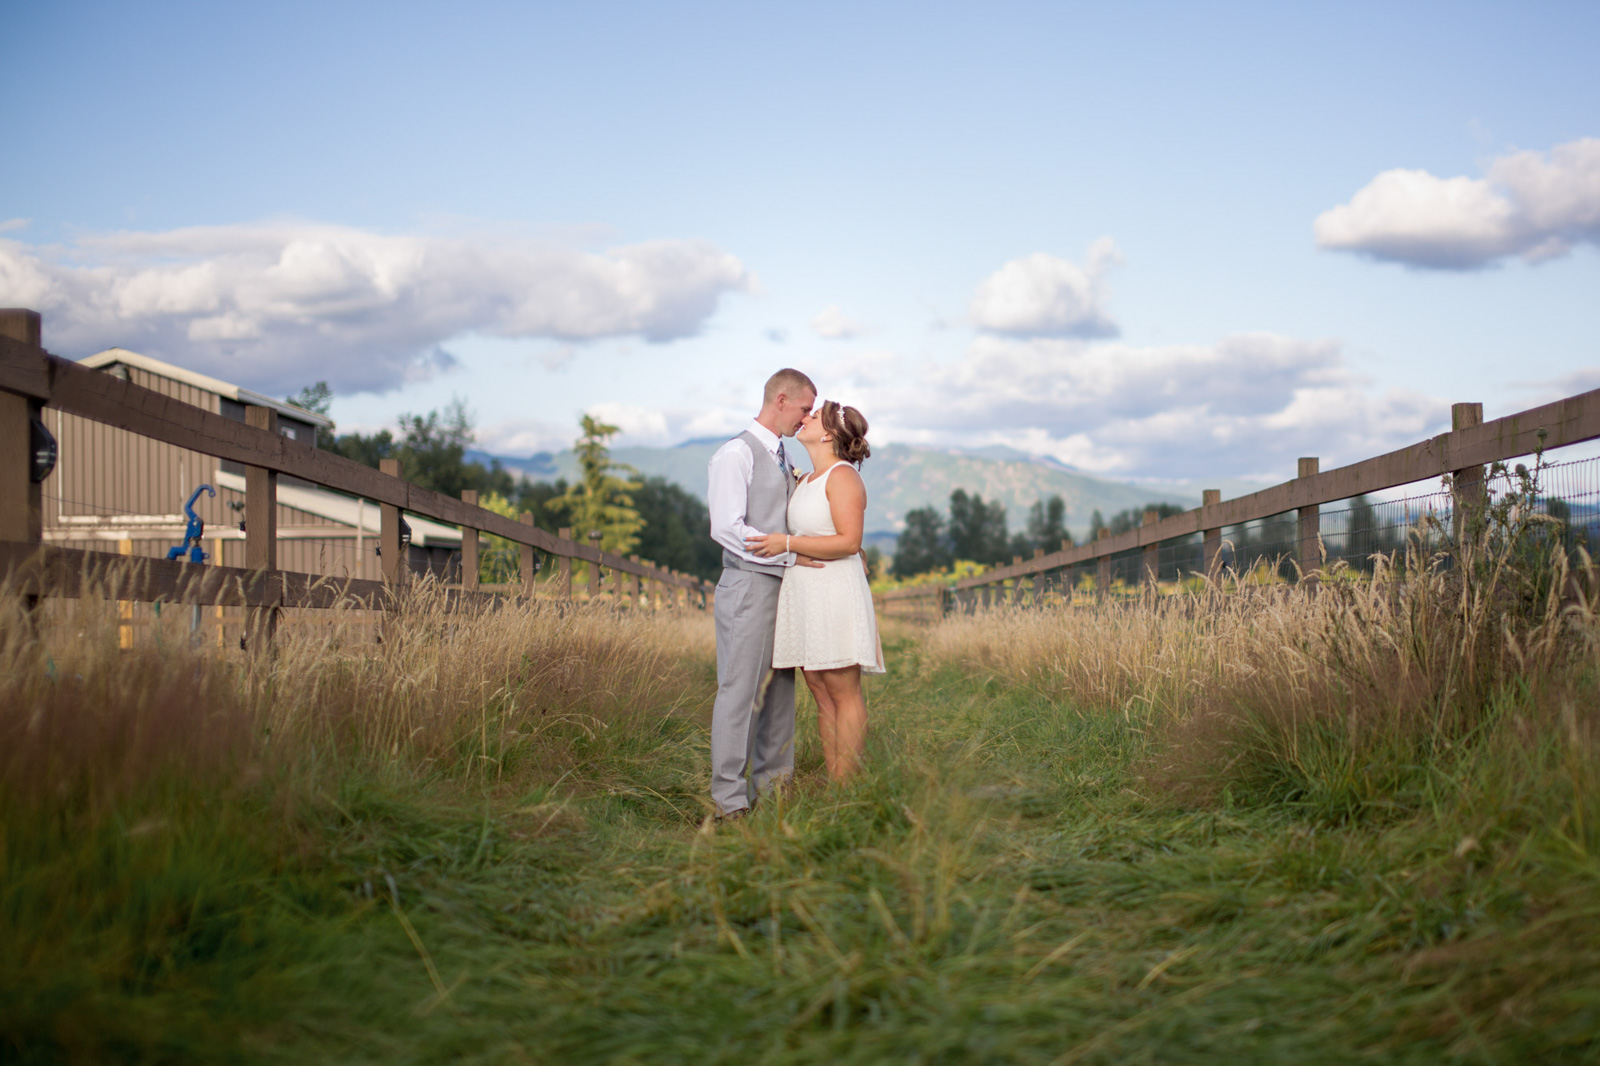 Weddings and Engagements -11 - Enumclaw Wedding Photographer Mountain View Manor Wedding